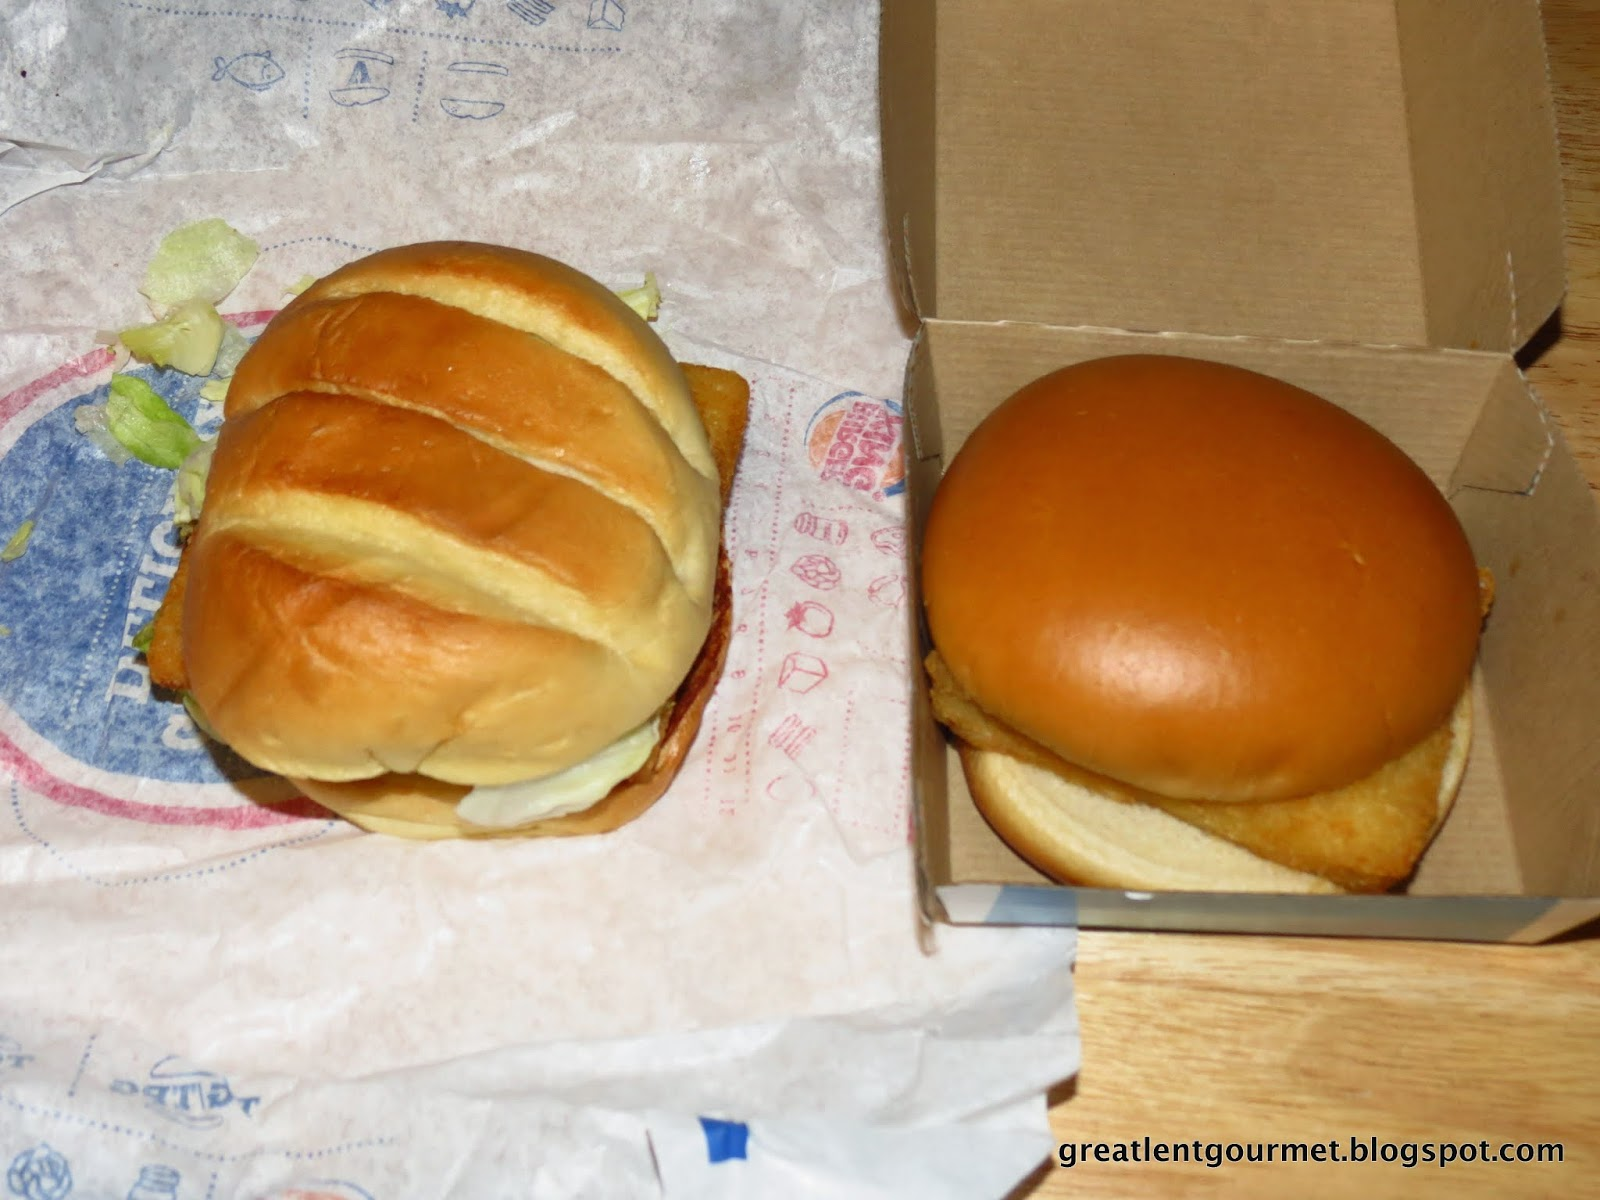 Mcdonalds filet o fish vs burger king bk big fish autos post for Burger king big fish